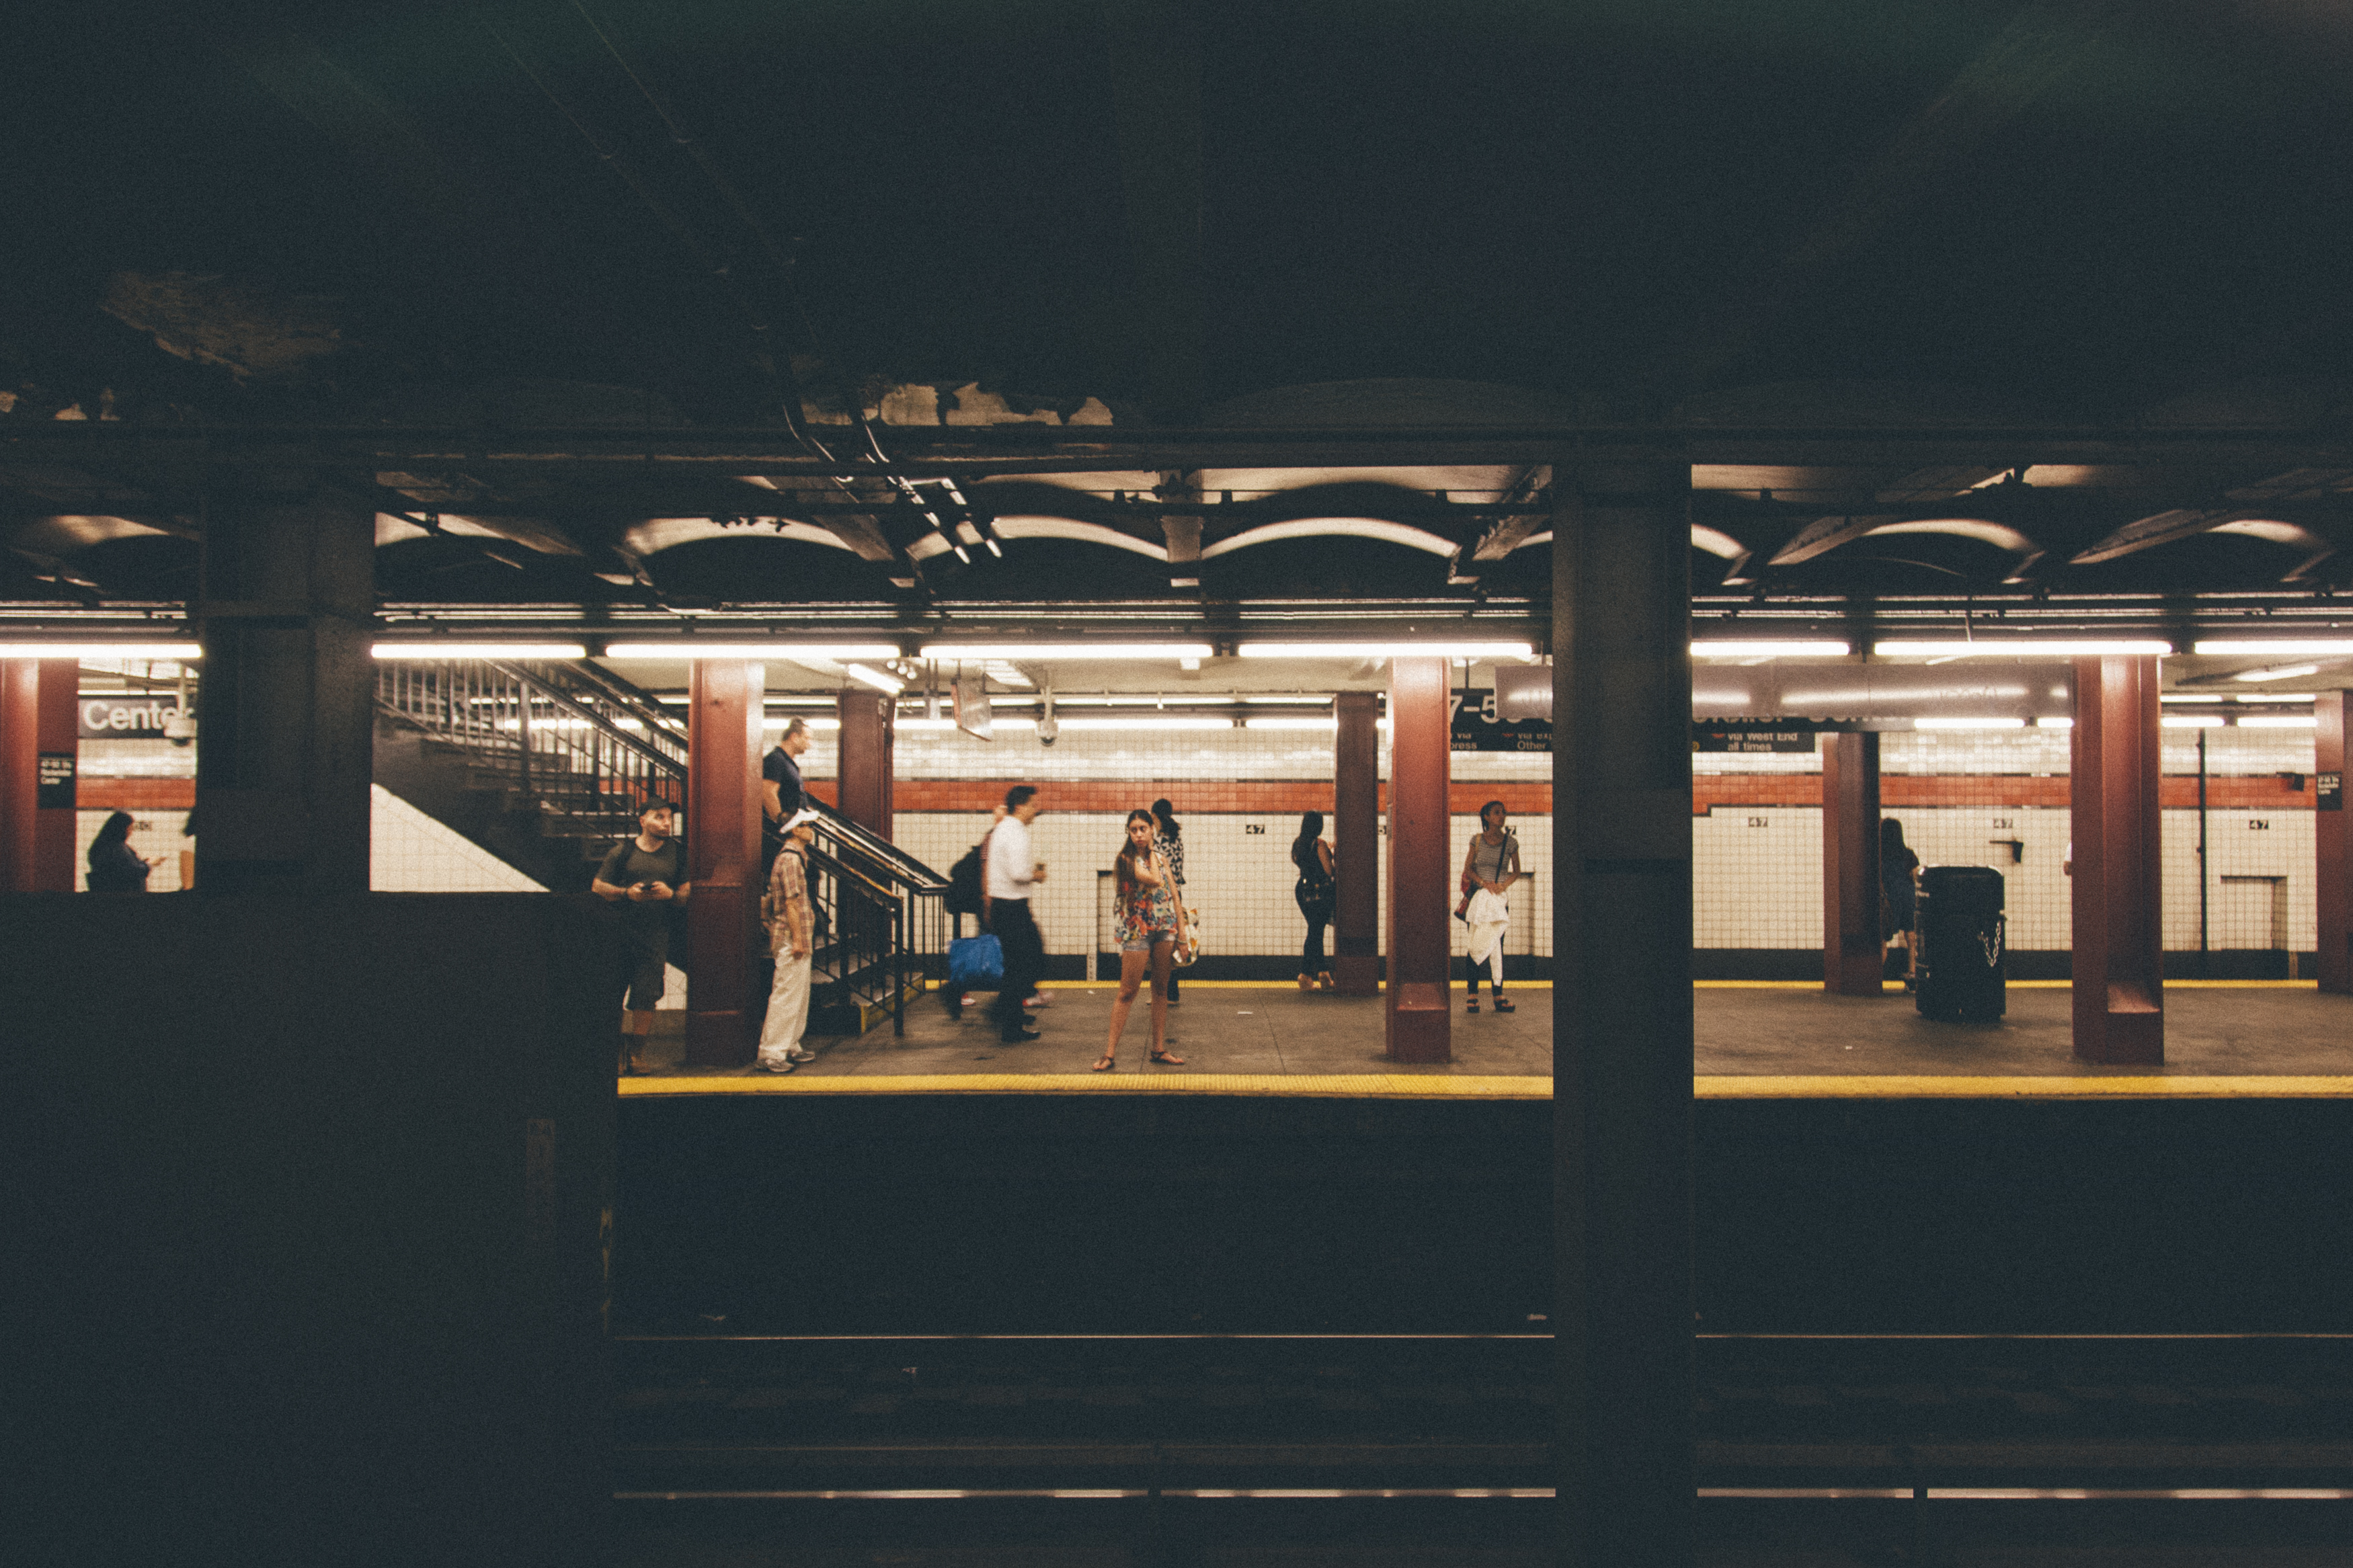 New York Subway - Brittany Ouzts